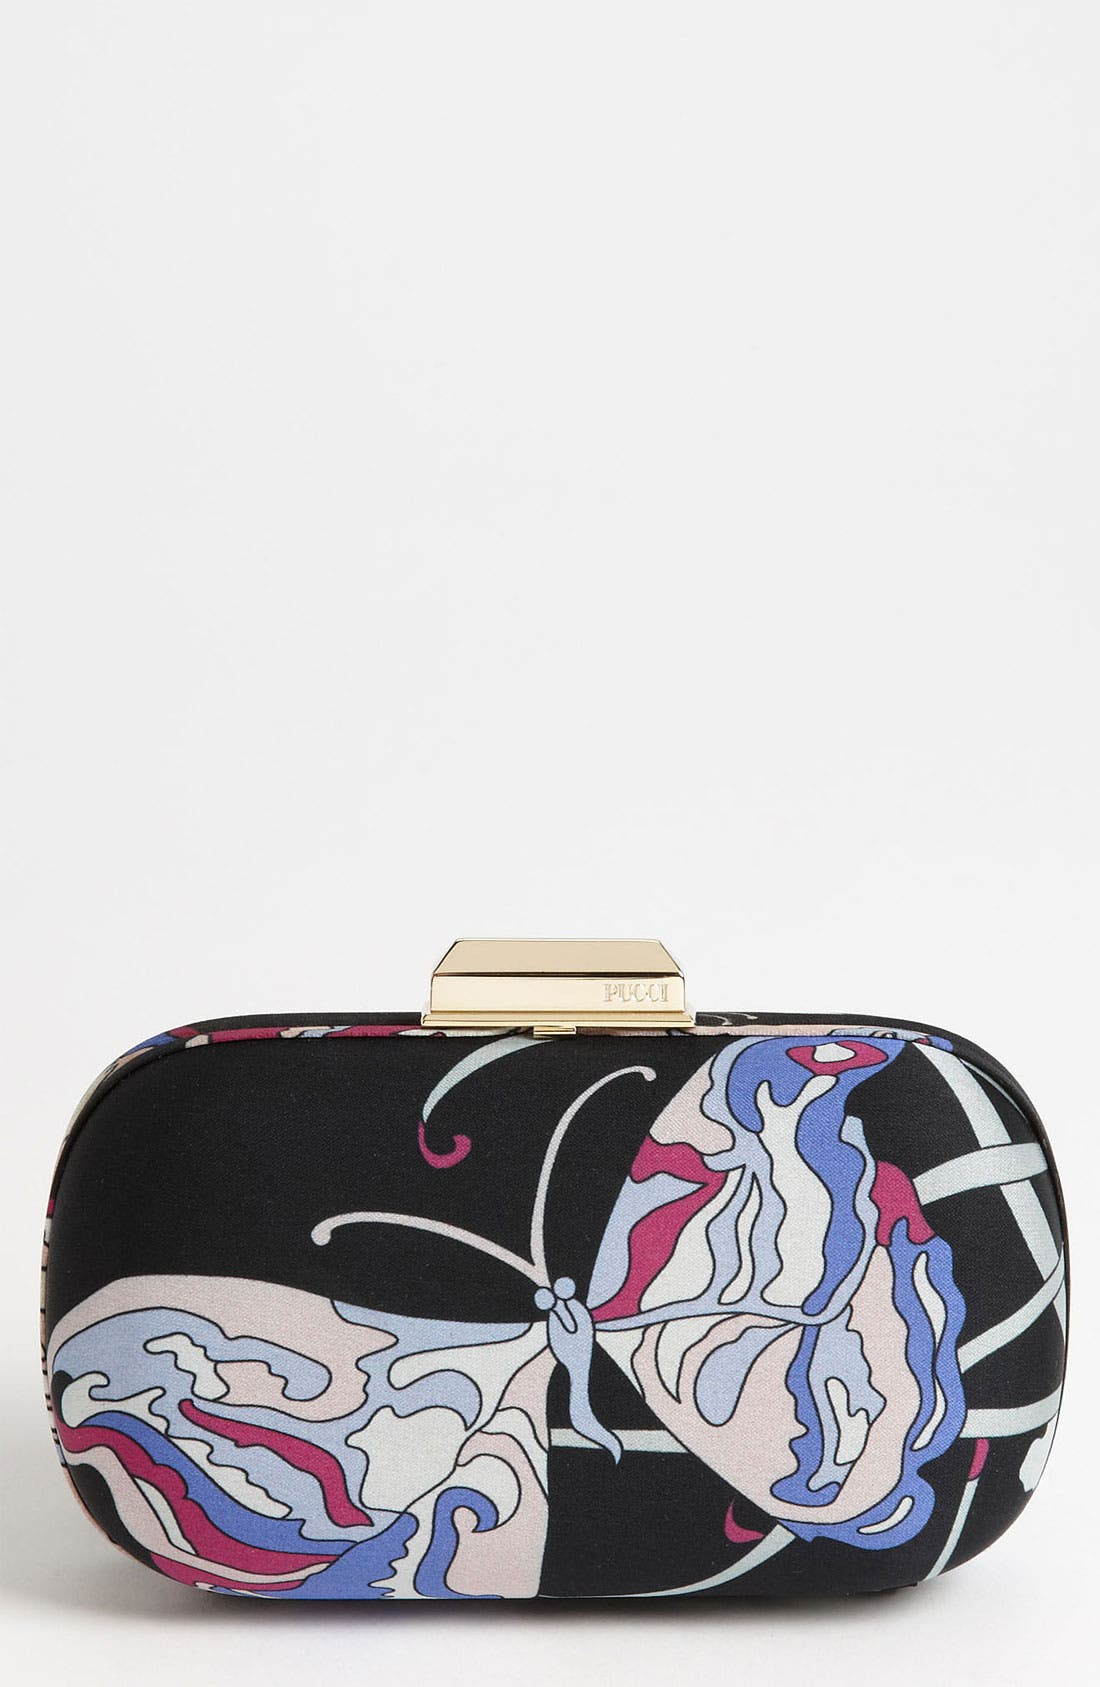 Alternate Image 1 Selected - Emilio Pucci 'Butterfly' Silk Minaudiere